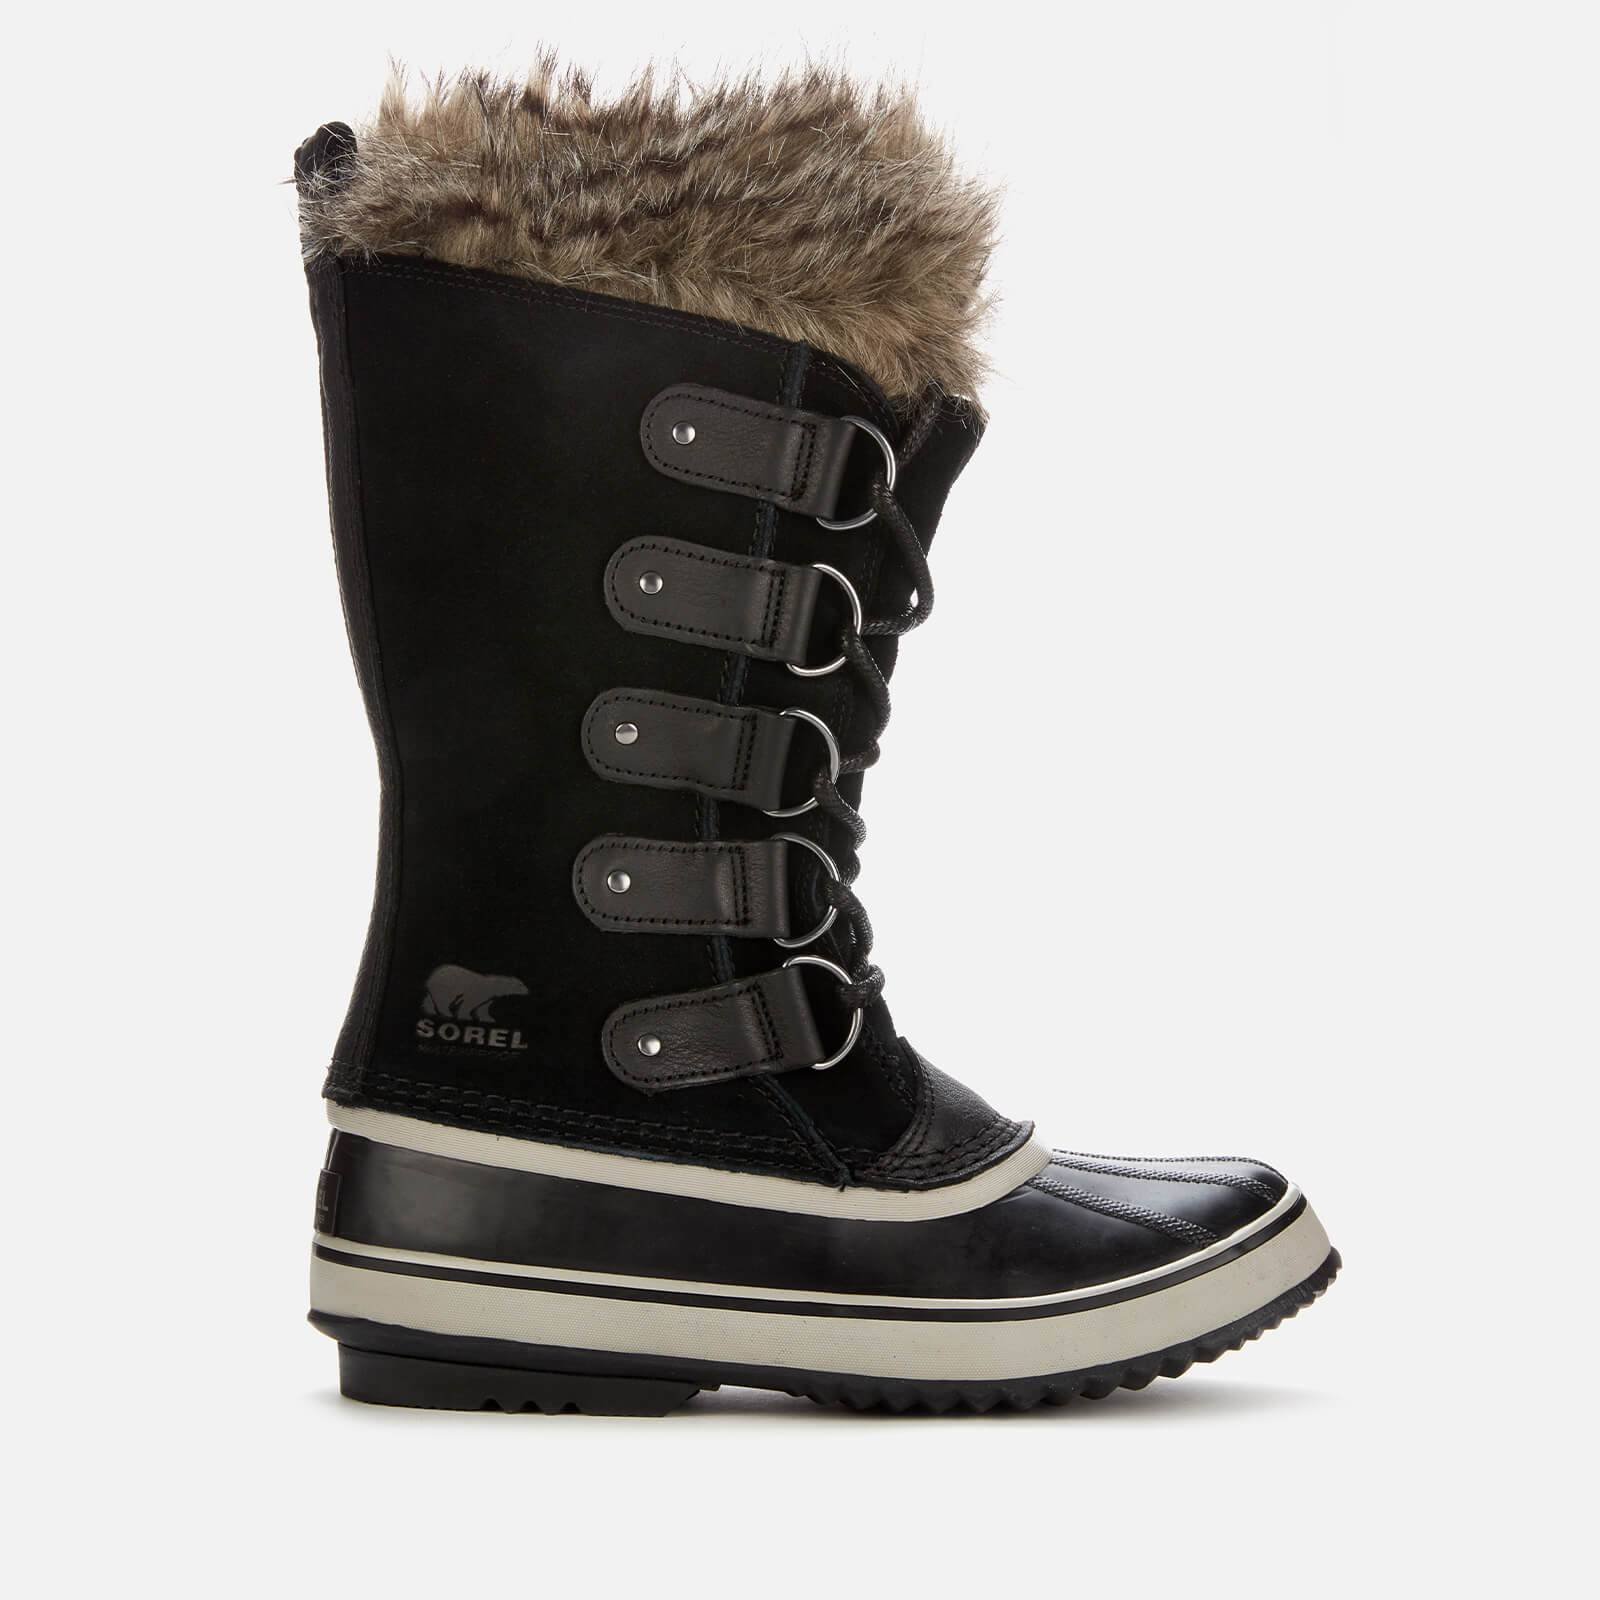 Sorel Women's Joan Of Arctic Waterproof Suede Knee High Winter Boots - Black/Quarry - UK 3